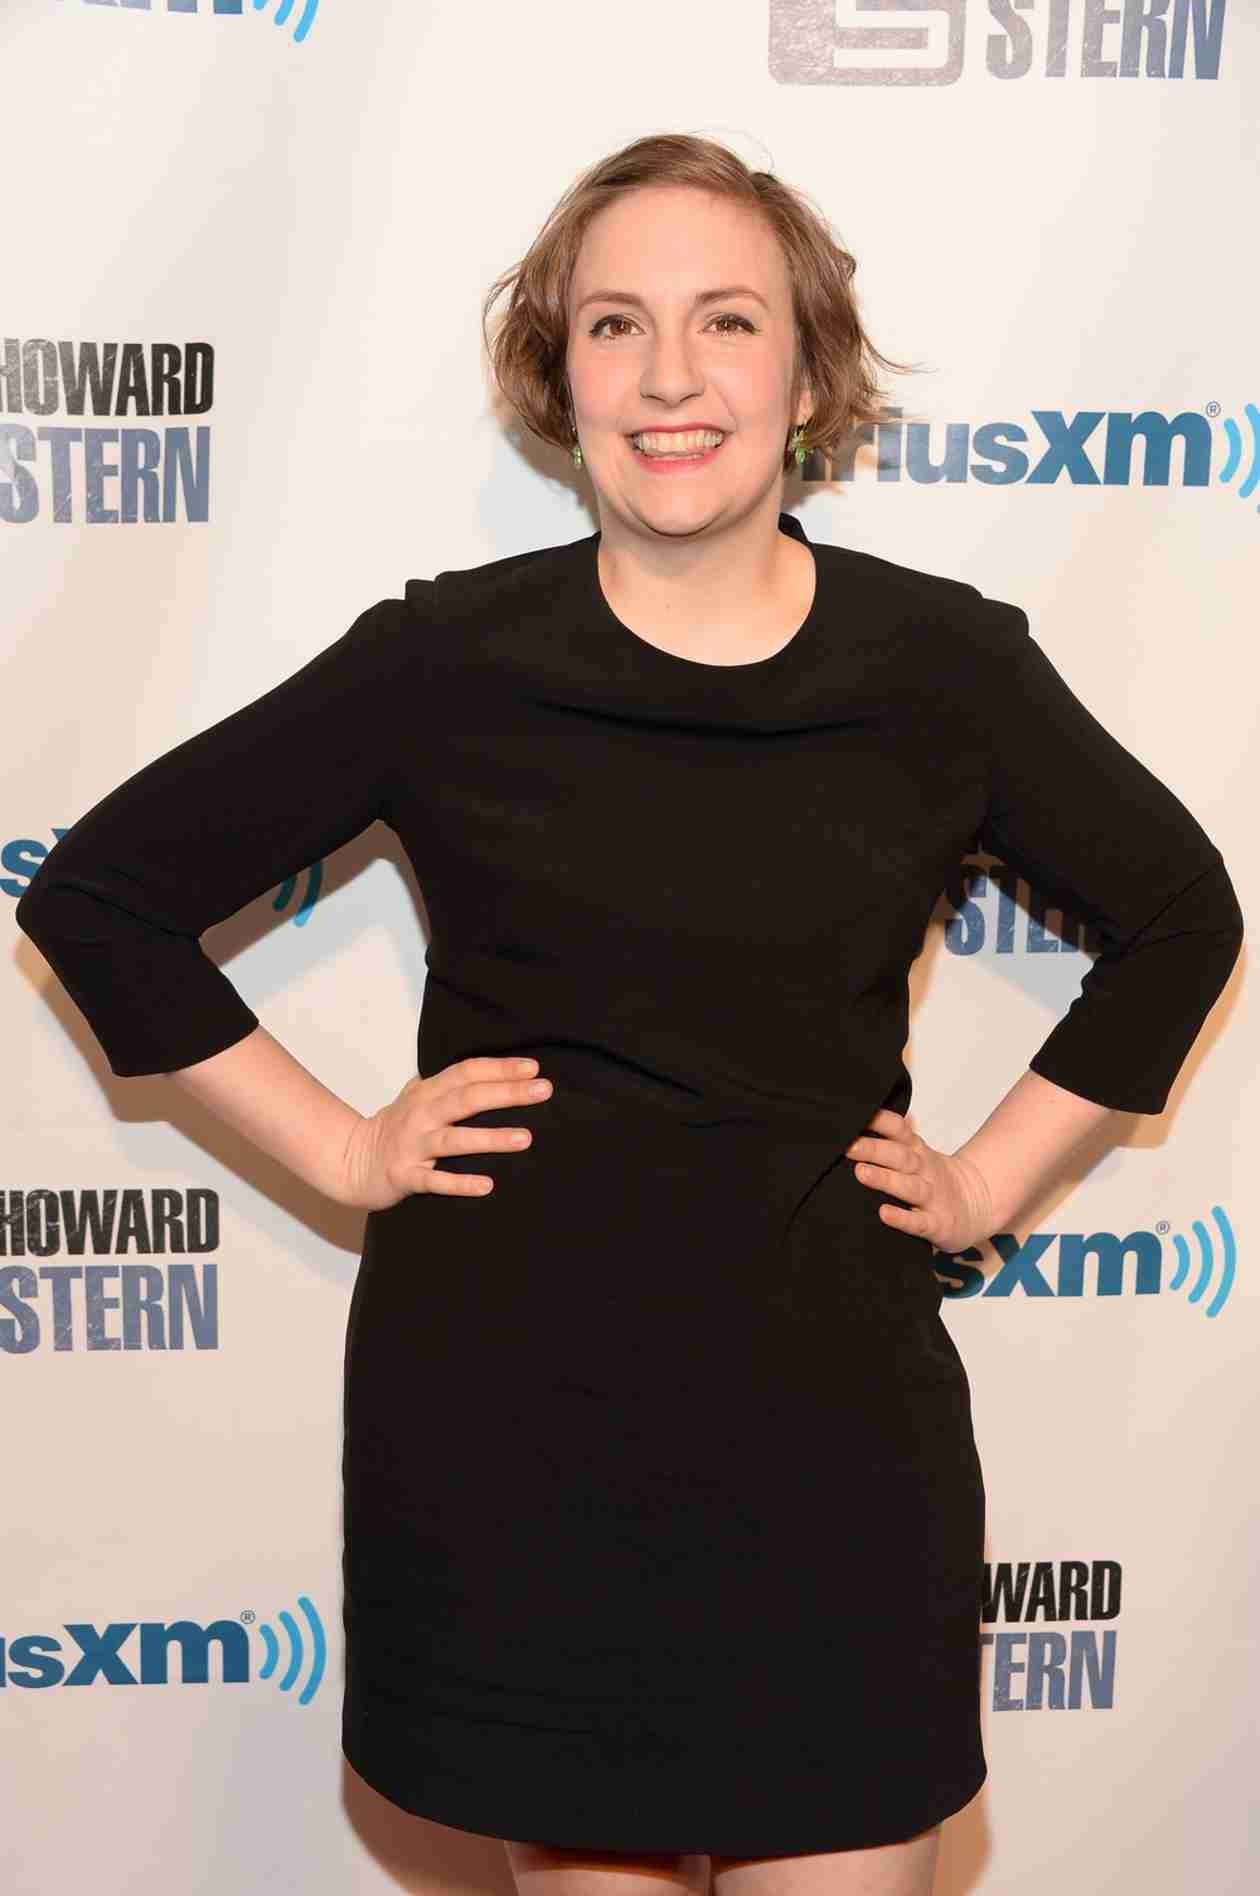 Lena Dunham Hosts SNL — Will You Be Watching? The Viggle Minute (VIDEO)